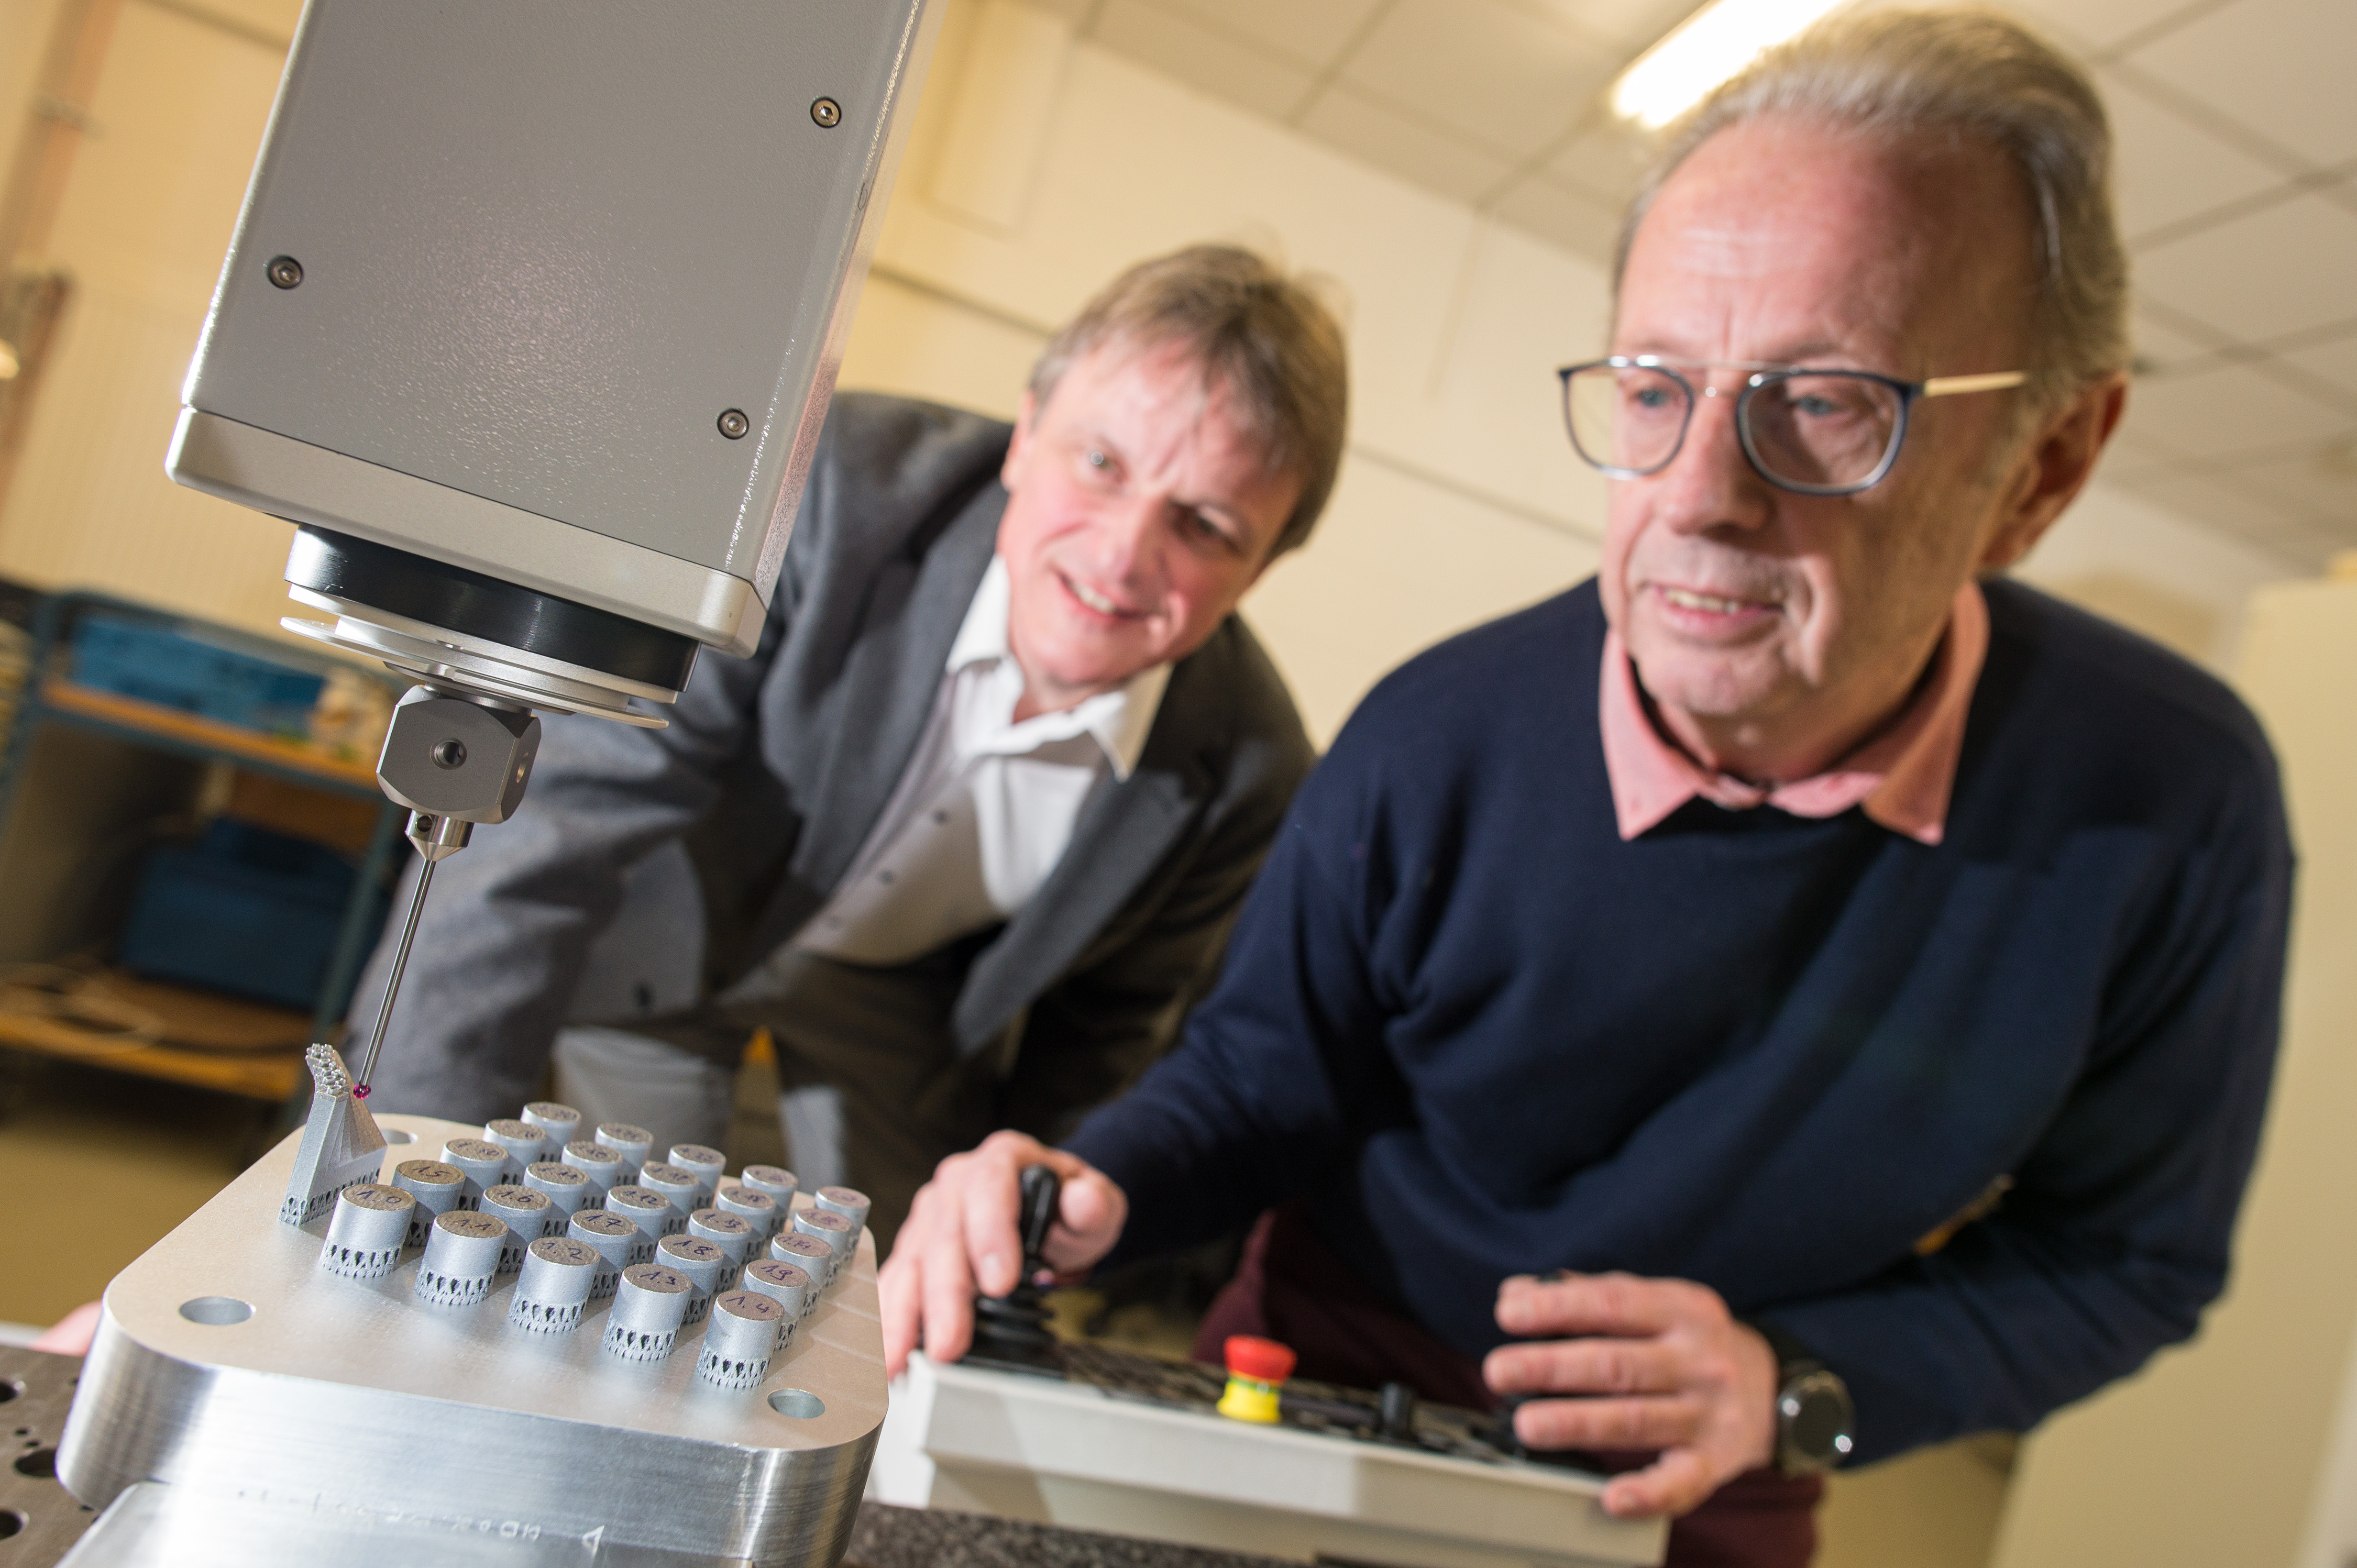 Professor Dirk Bähre (l., here with Stefan Wilhelm from his research group) and his research team at Saarland University. Photo via Saarland University.